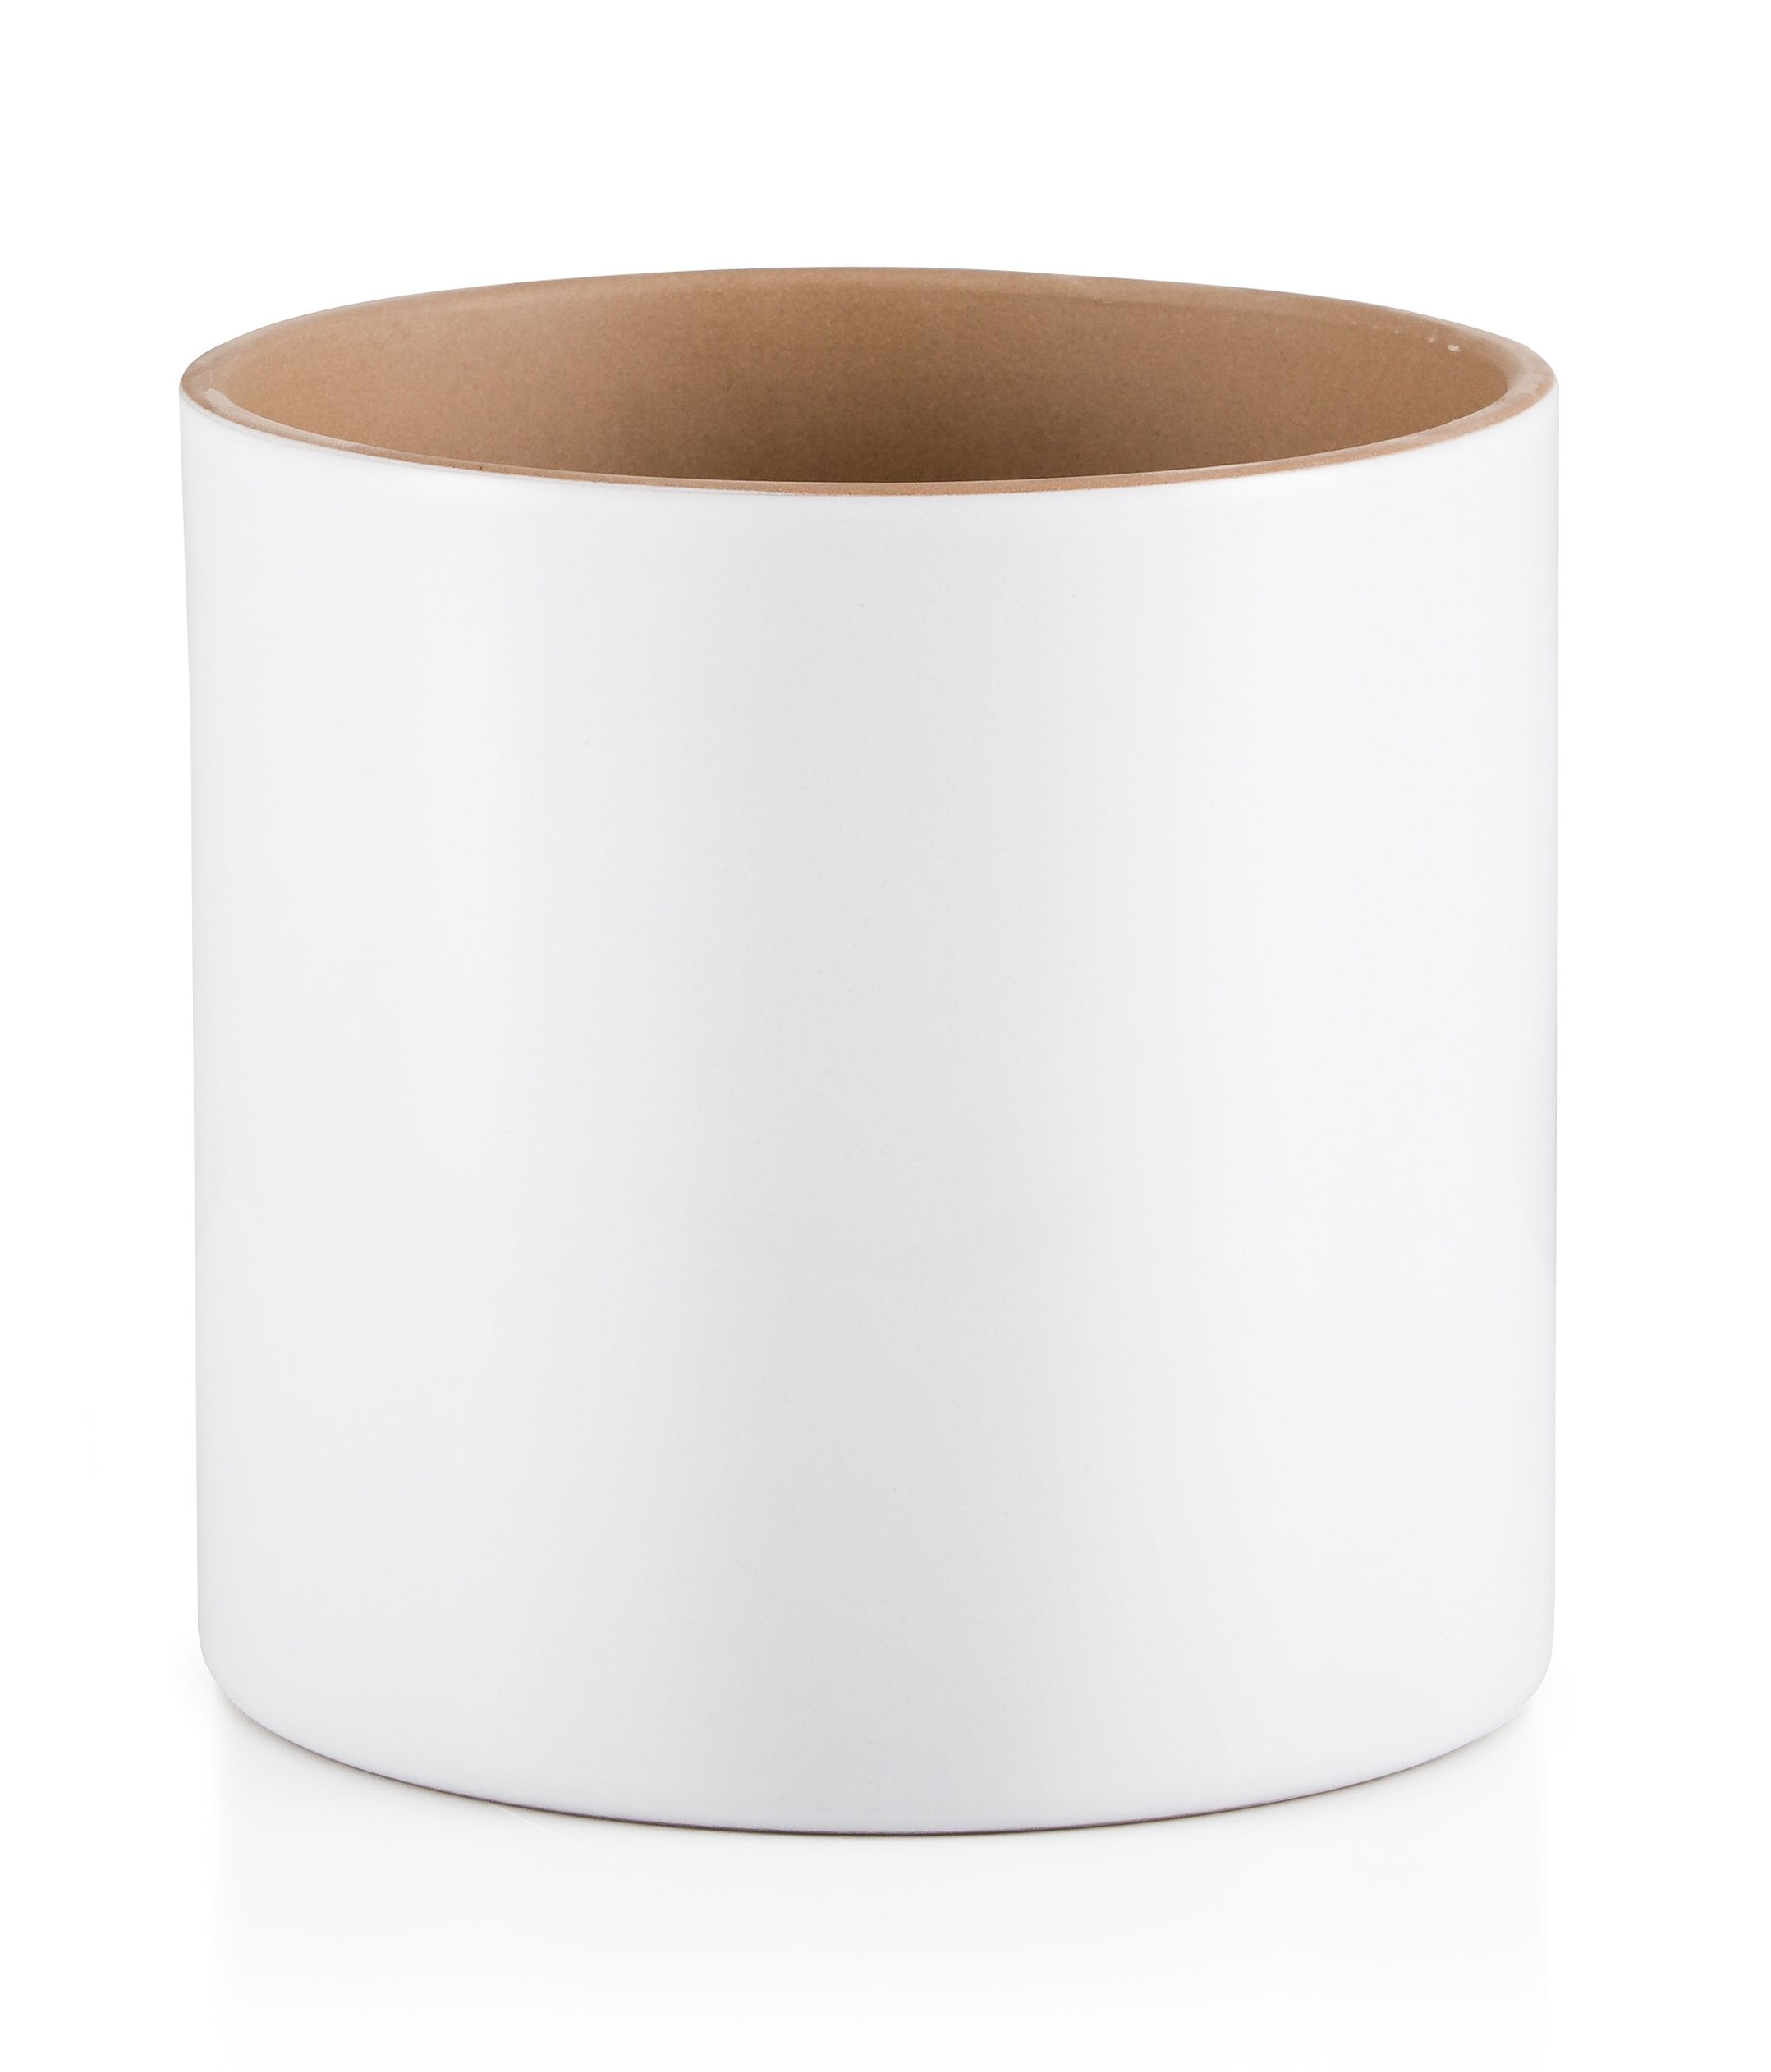 Set of 3 white ceramic plant pots all feature holes at the bottom for Greenaholics Plant Pots - + Inch Matt Ceramic Planter with Drainage Hole for Flower, Cactus, Succulent Planting, Set of 2, White. by Greenaholics. $ $ 24 90 Prime. FREE Shipping on eligible orders.